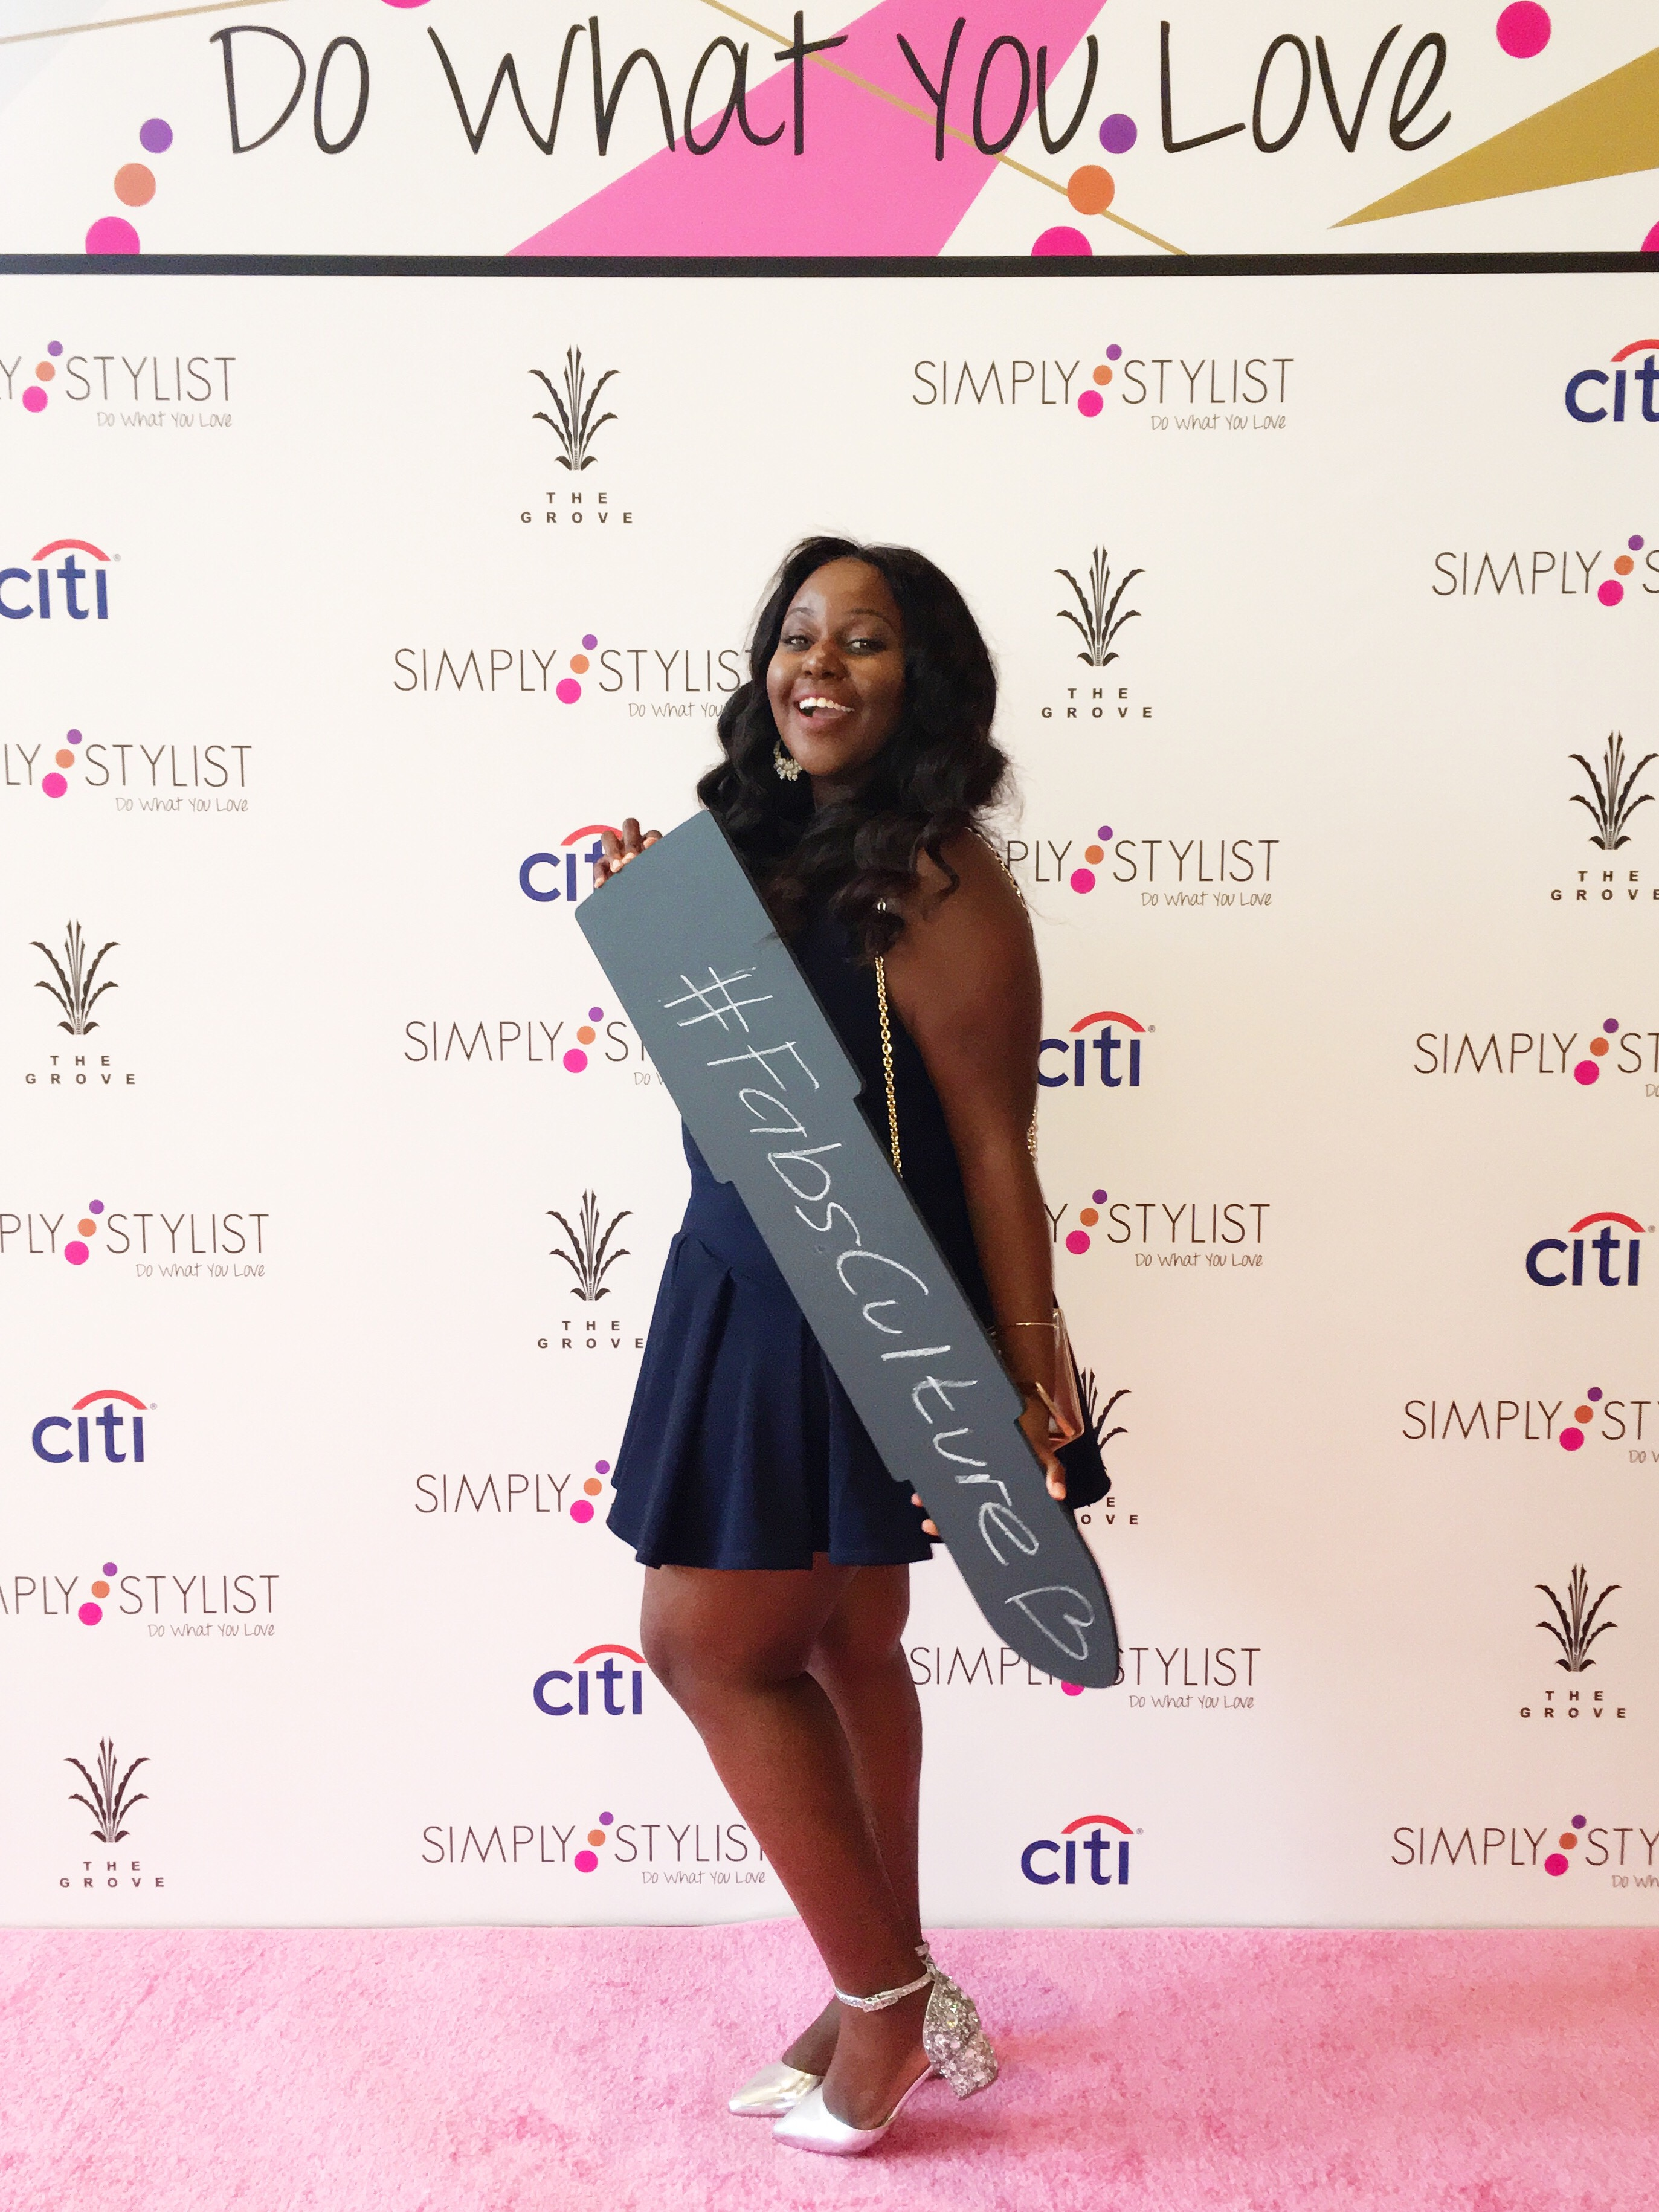 I attended the Simply Stylist Los Angeles Fashion and Beauty Conference for bloggers and here's what happened